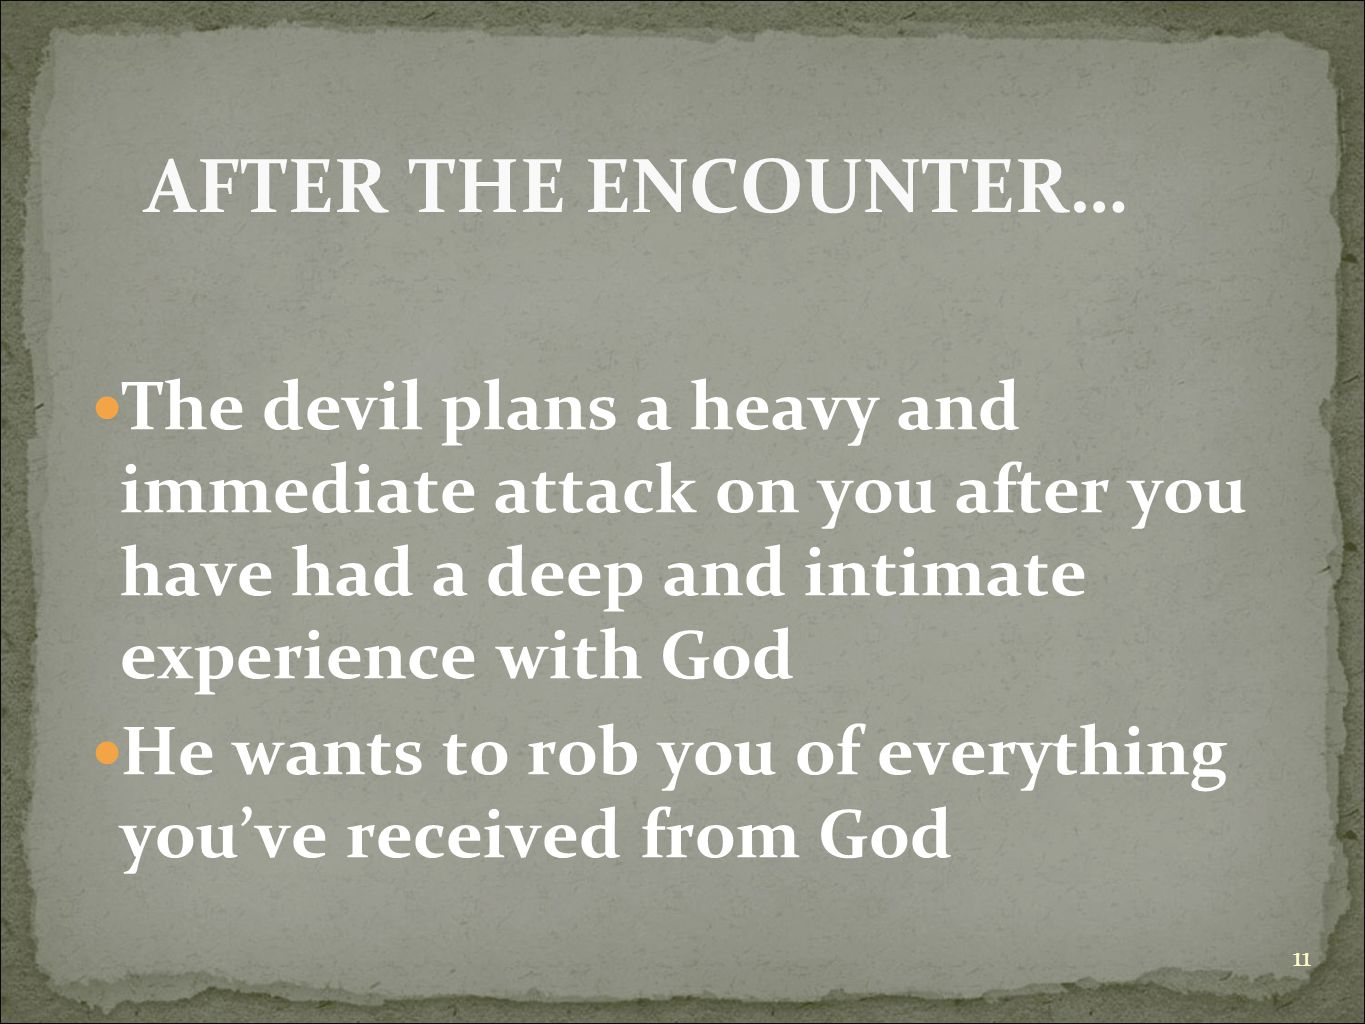 AFTER THE ENCOUNTER… The devil plans a heavy and immediate attack on you after you have had a deep and intimate experience with God.